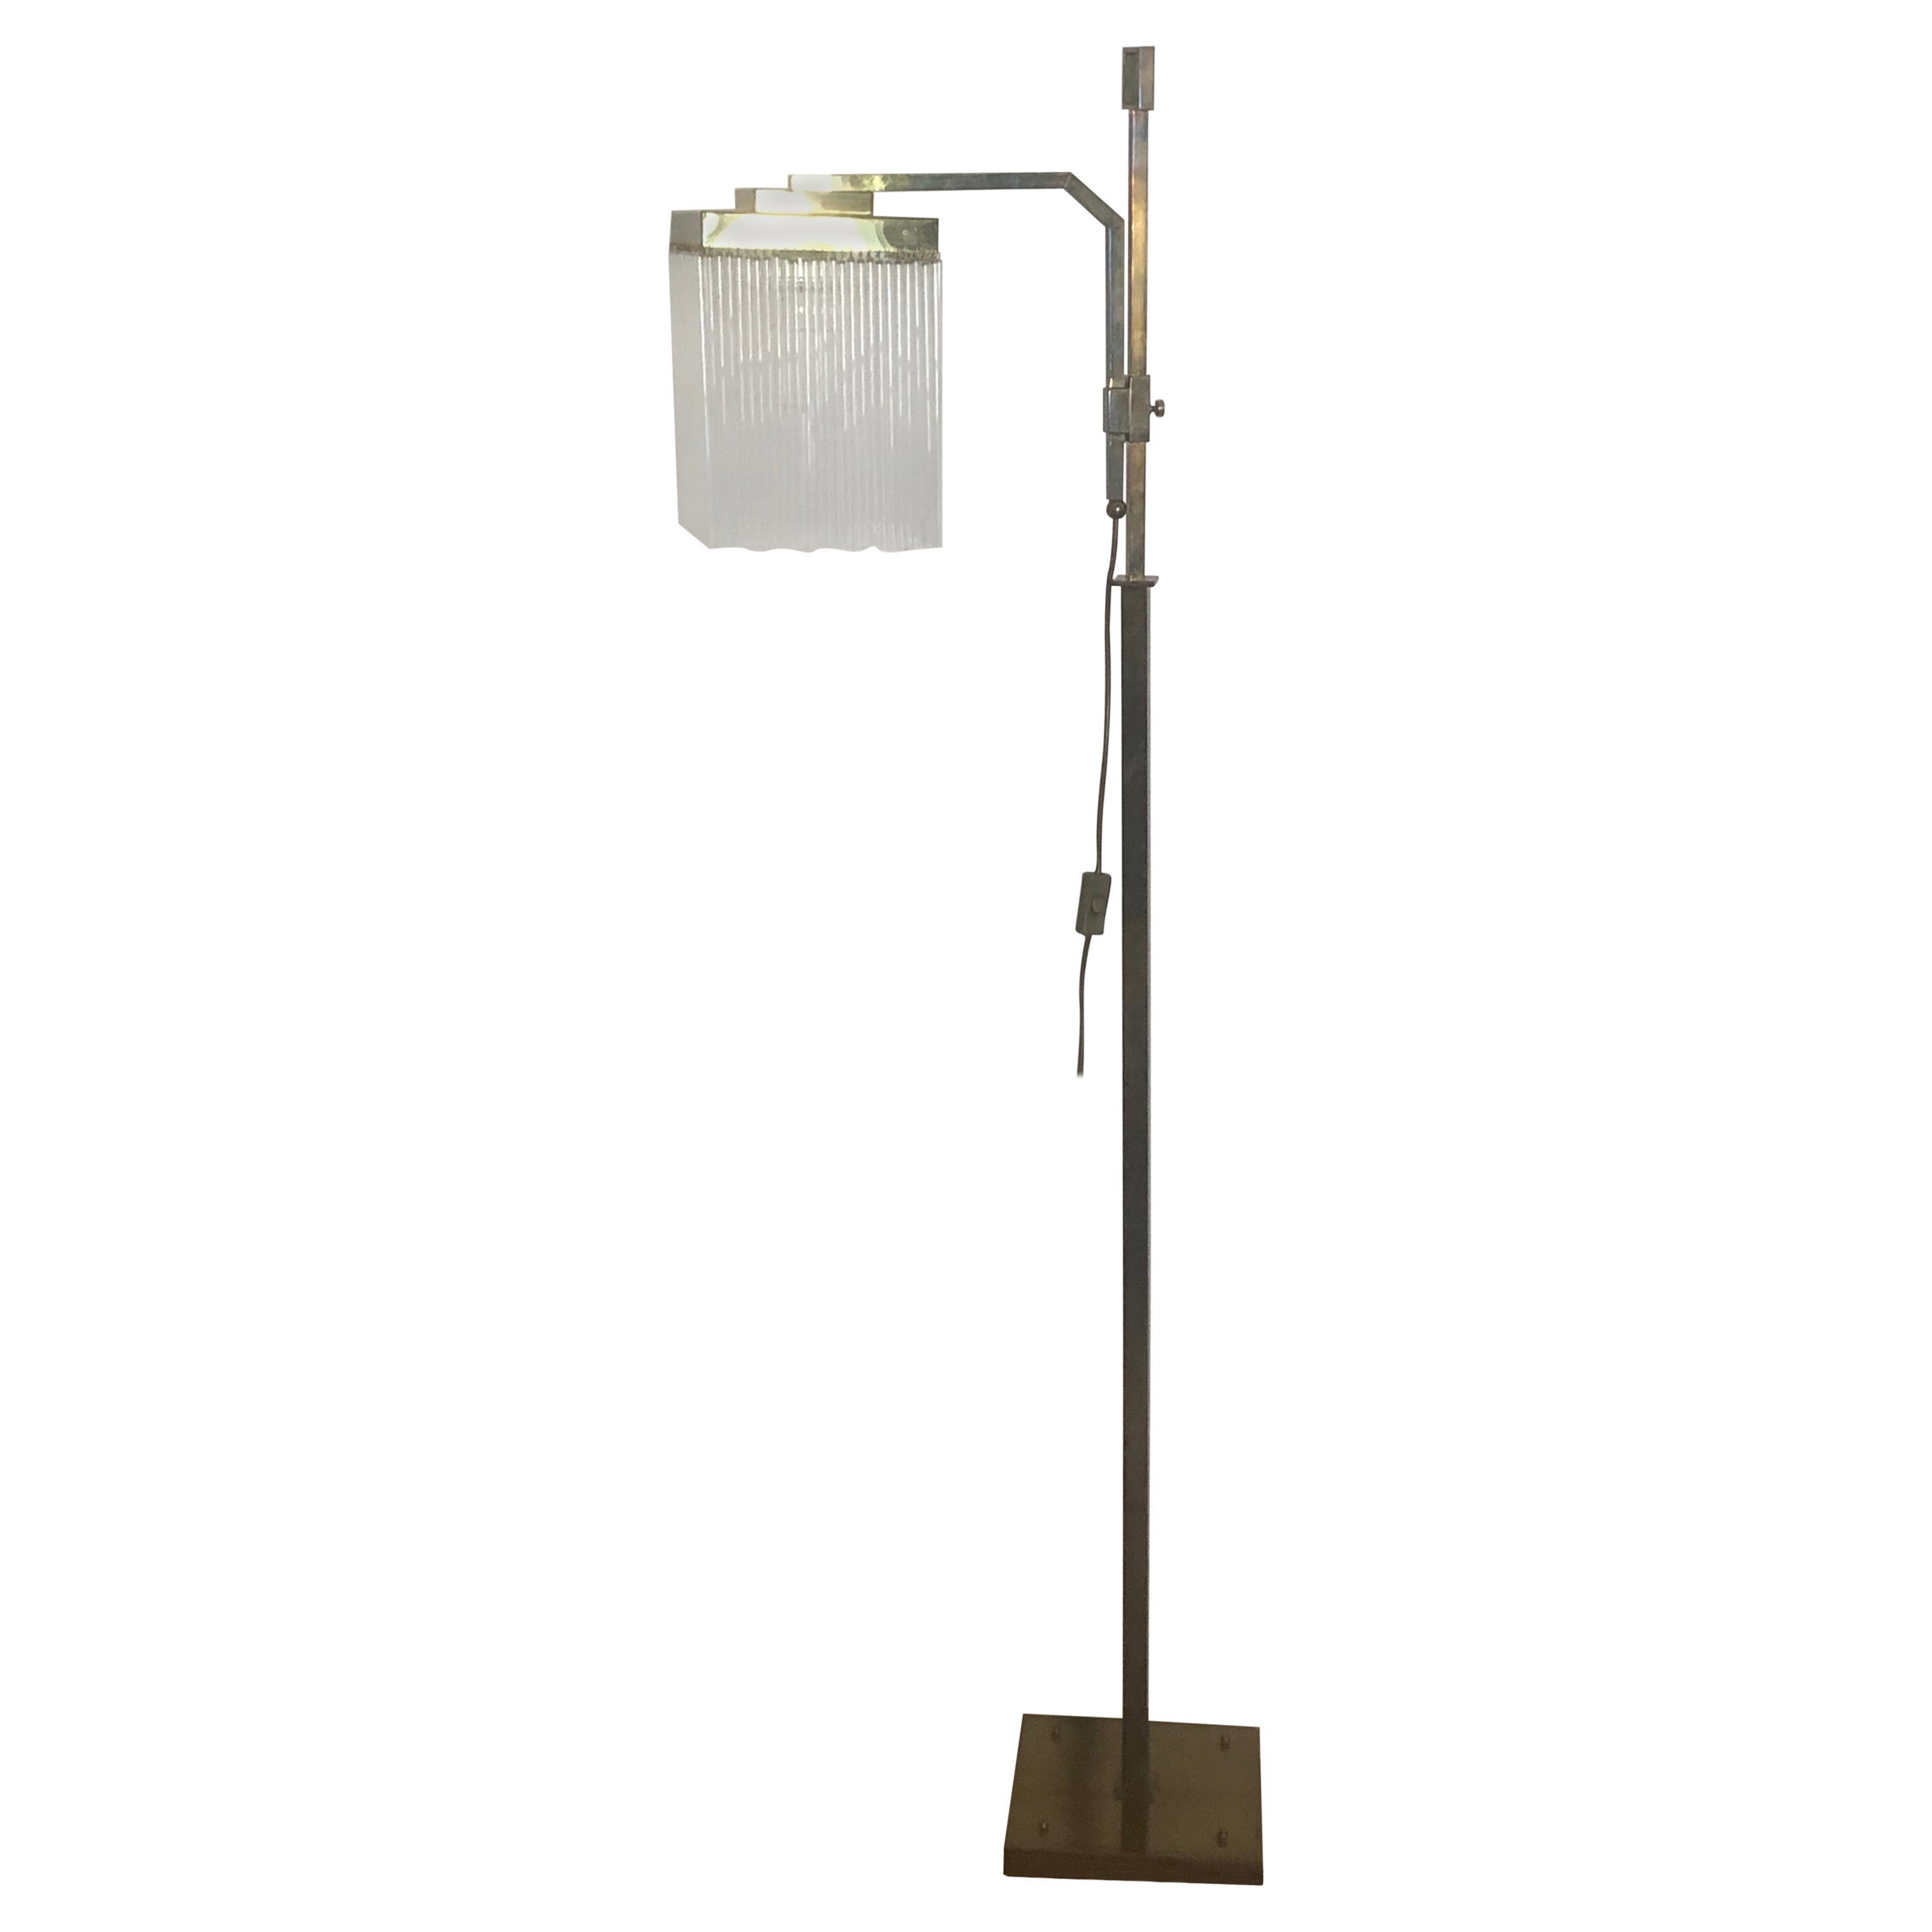 Rare Brass and Glass Floor Lamp From Vienna, Koloman Moser, Otto Wagner Style